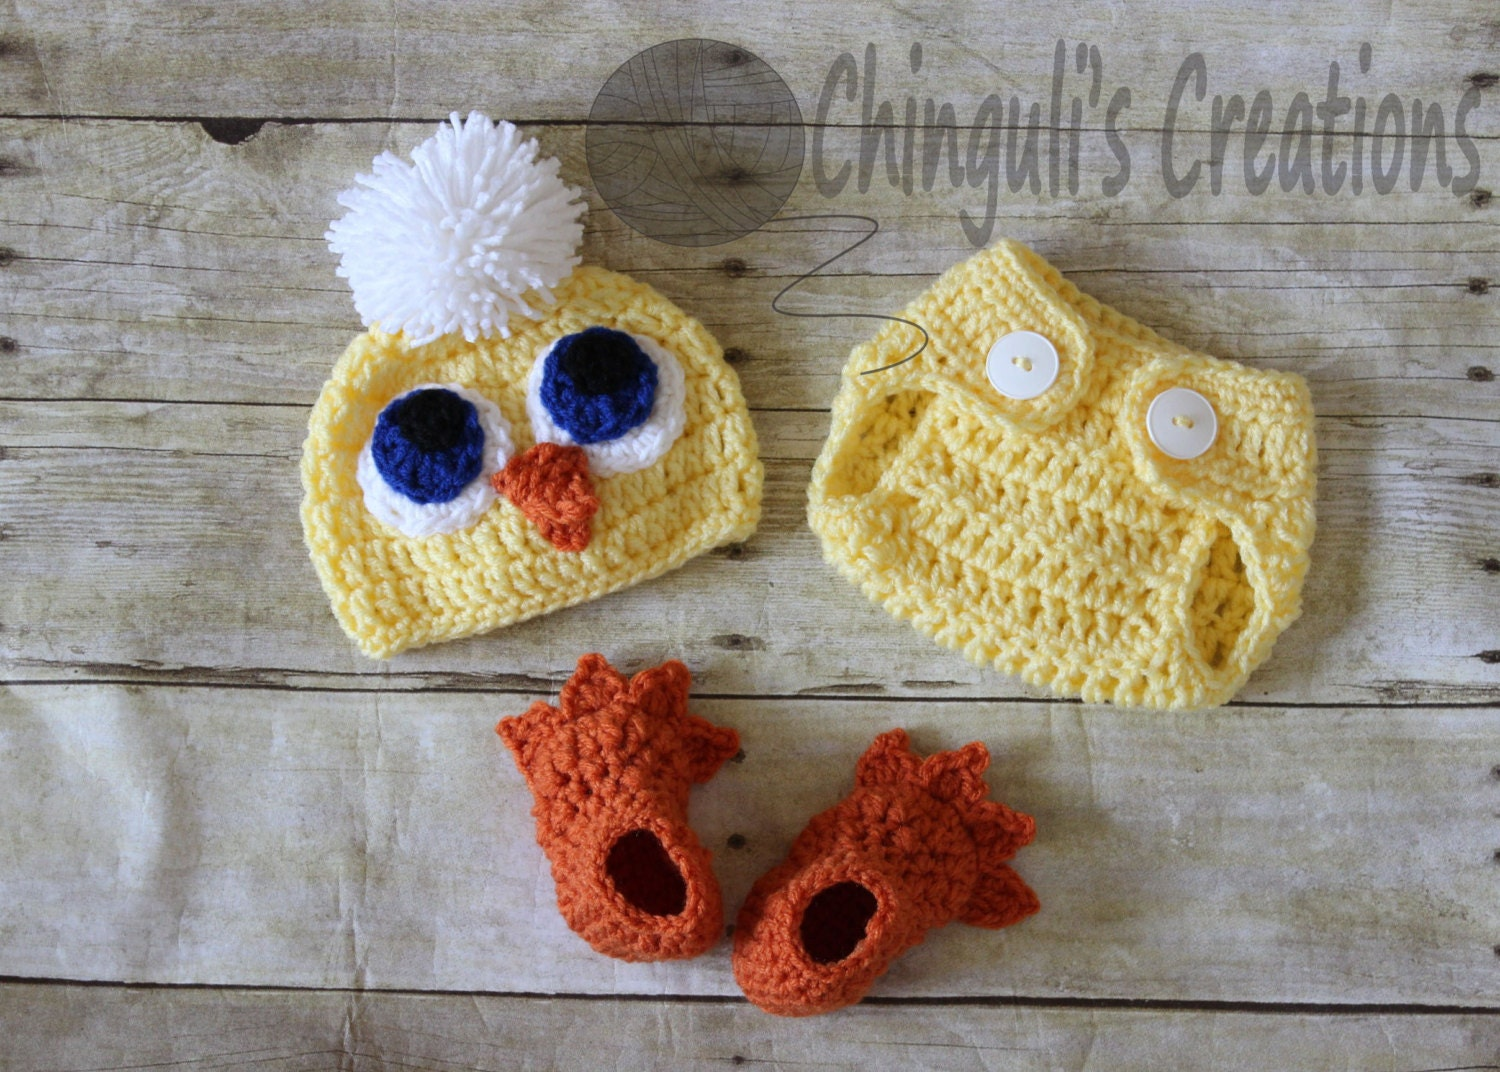 Dorable Crochet Chicken Pattern Adornment - Sewing Pattern for ...